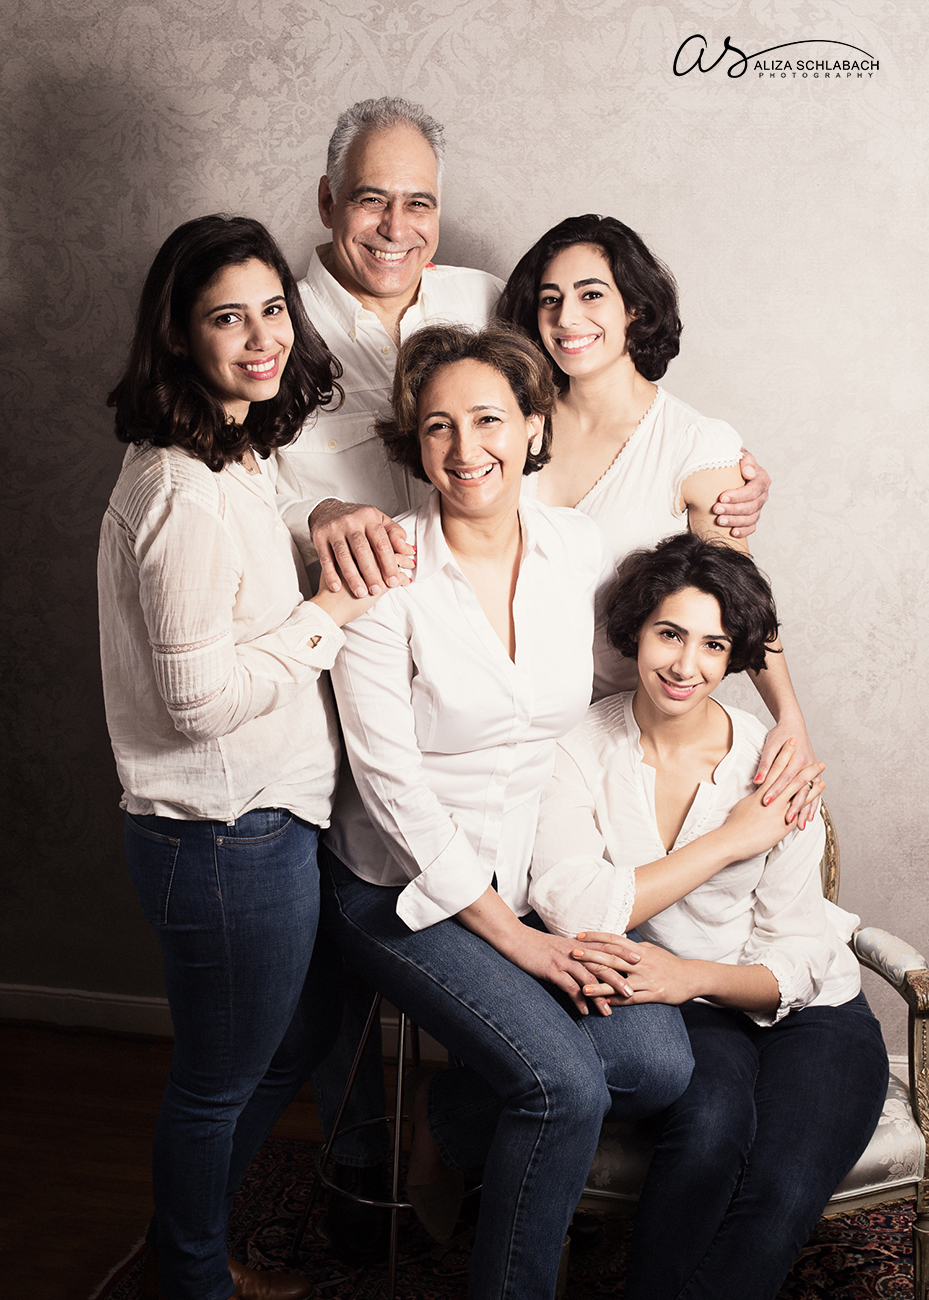 Family portrait of father, mother, and their three grown daughters